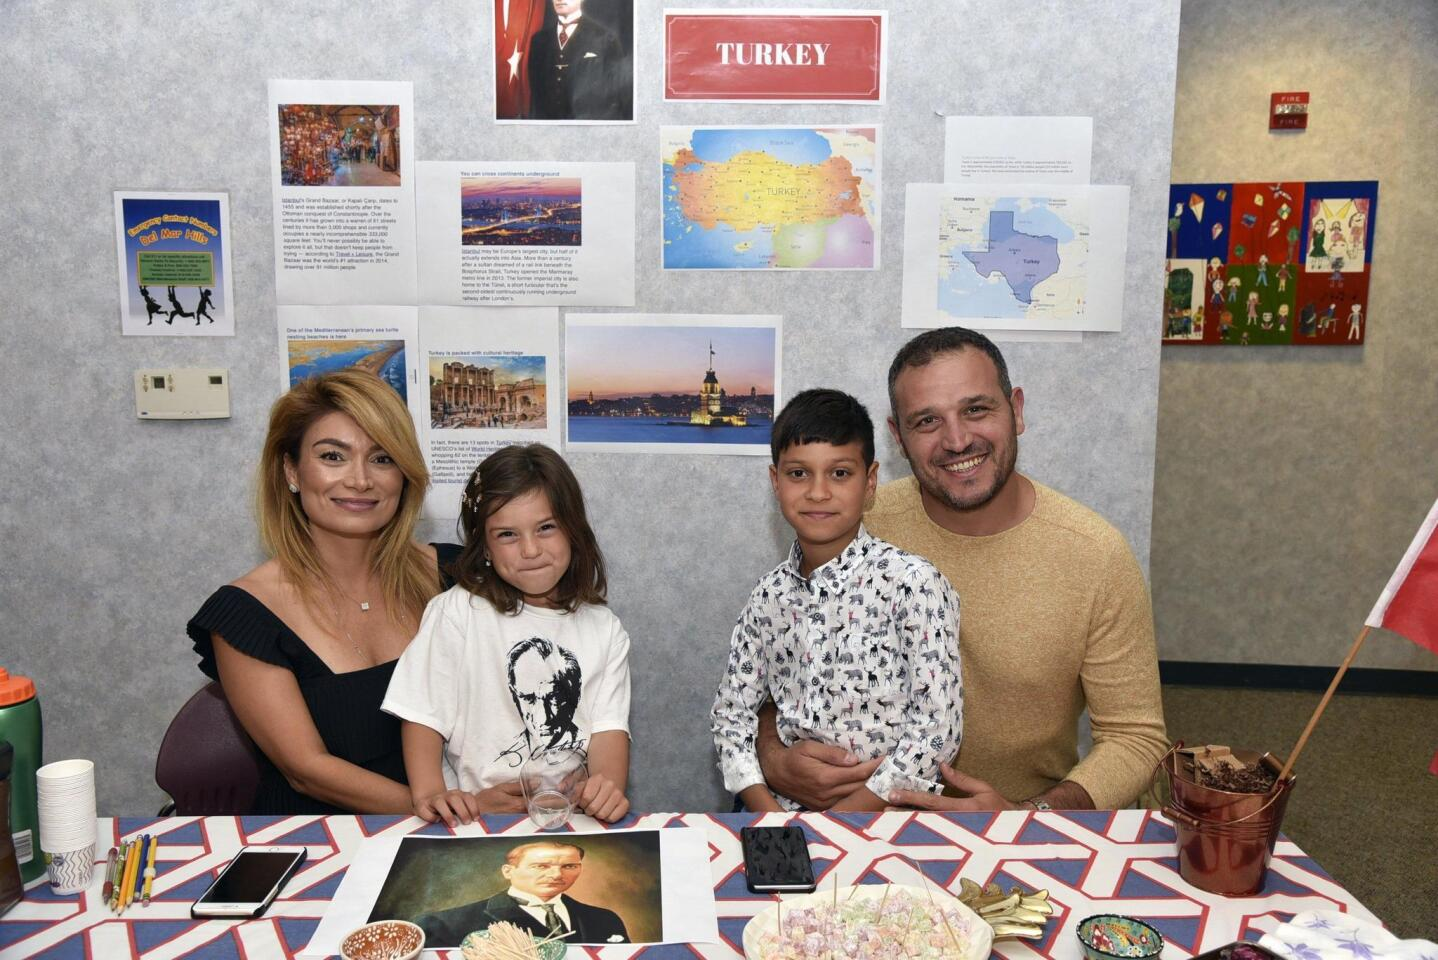 Yasemin and Halil Unel with Bella and Jake, representing Turkey